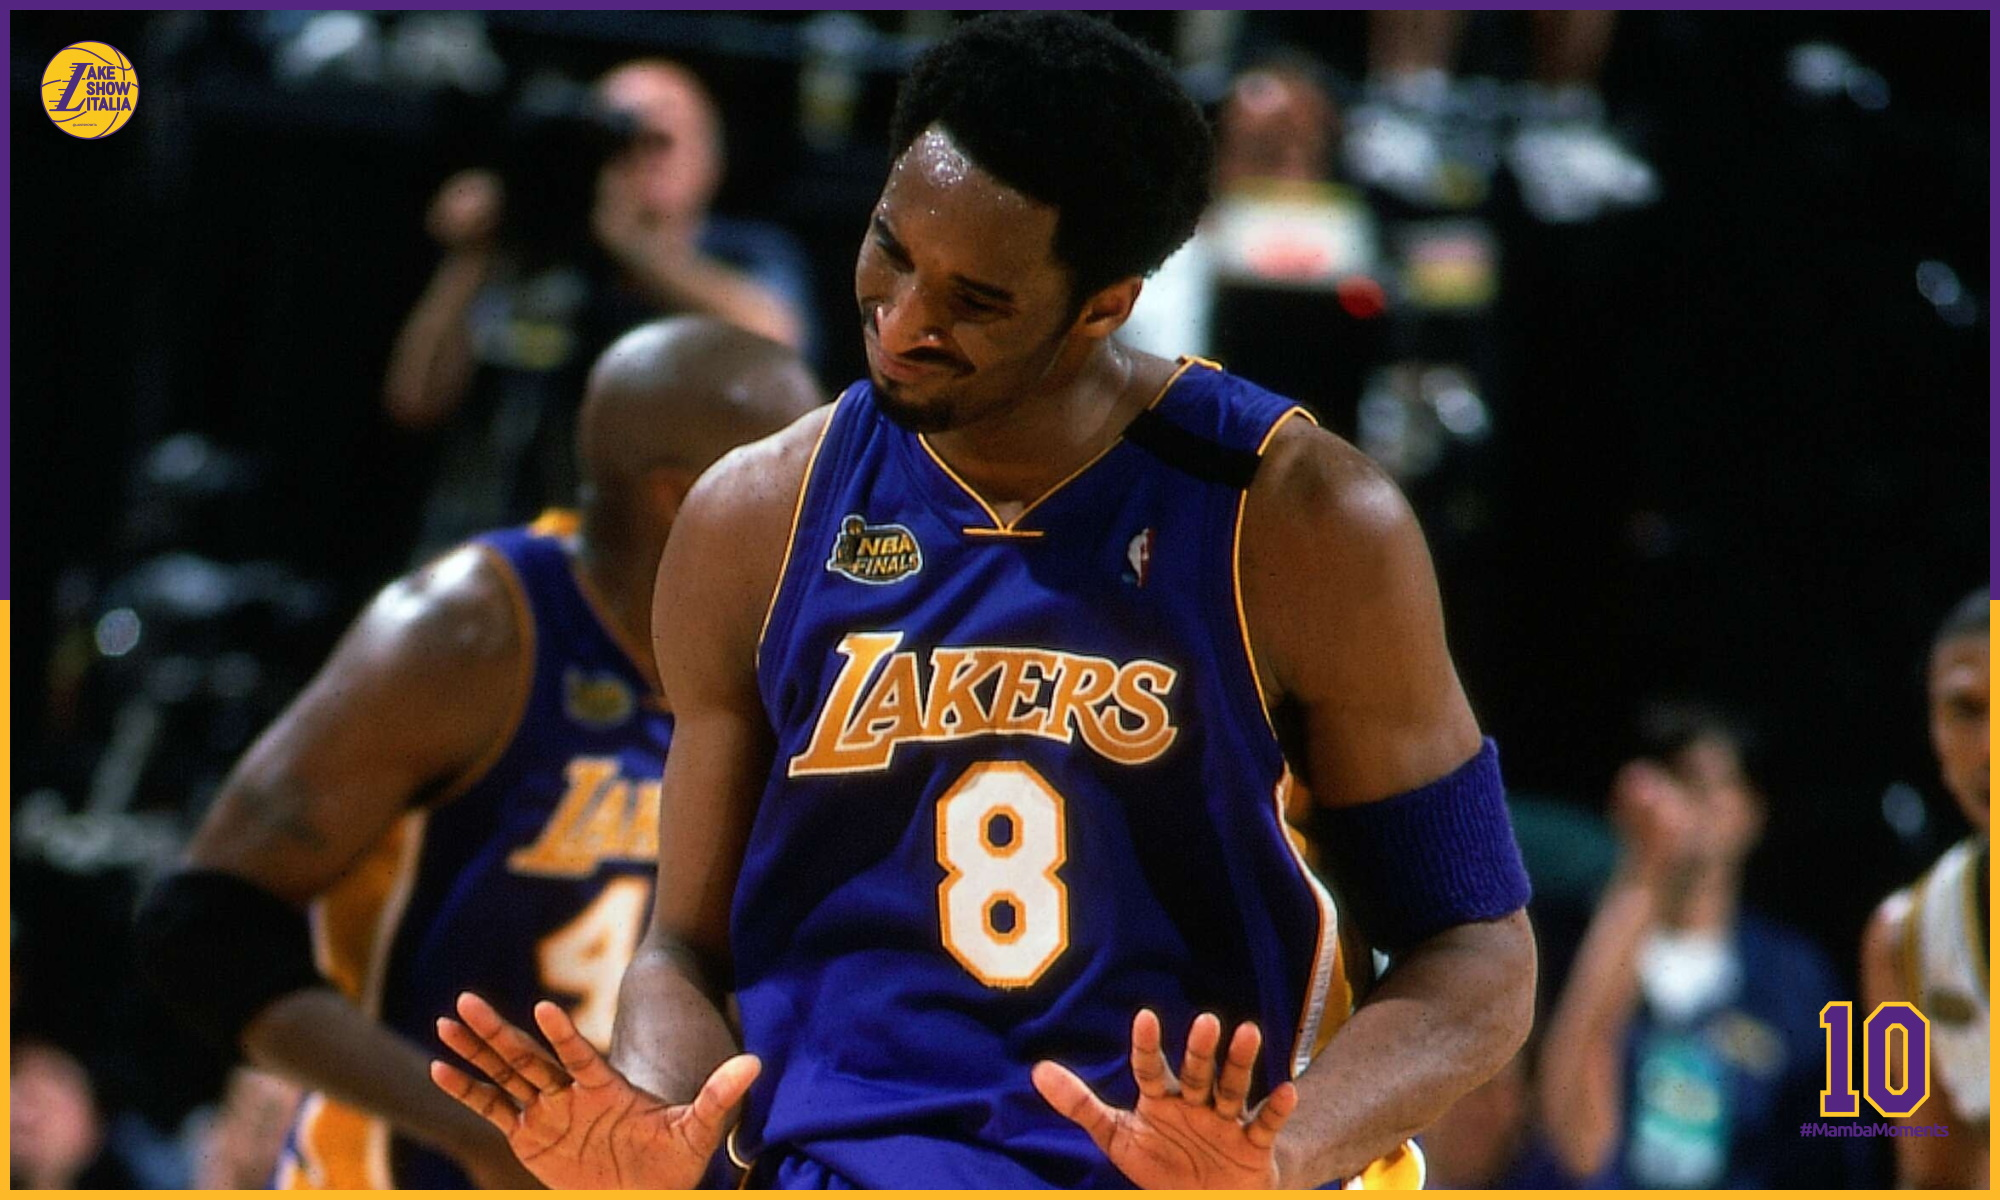 Kobe Bryant #8 of the Los Angeles Lakers displays emotion against the Indiana Pacers during Game Four of the 2000 NBA Finals on June 14, 2000 at Conseco Field House in Indianapolis, Indiana.